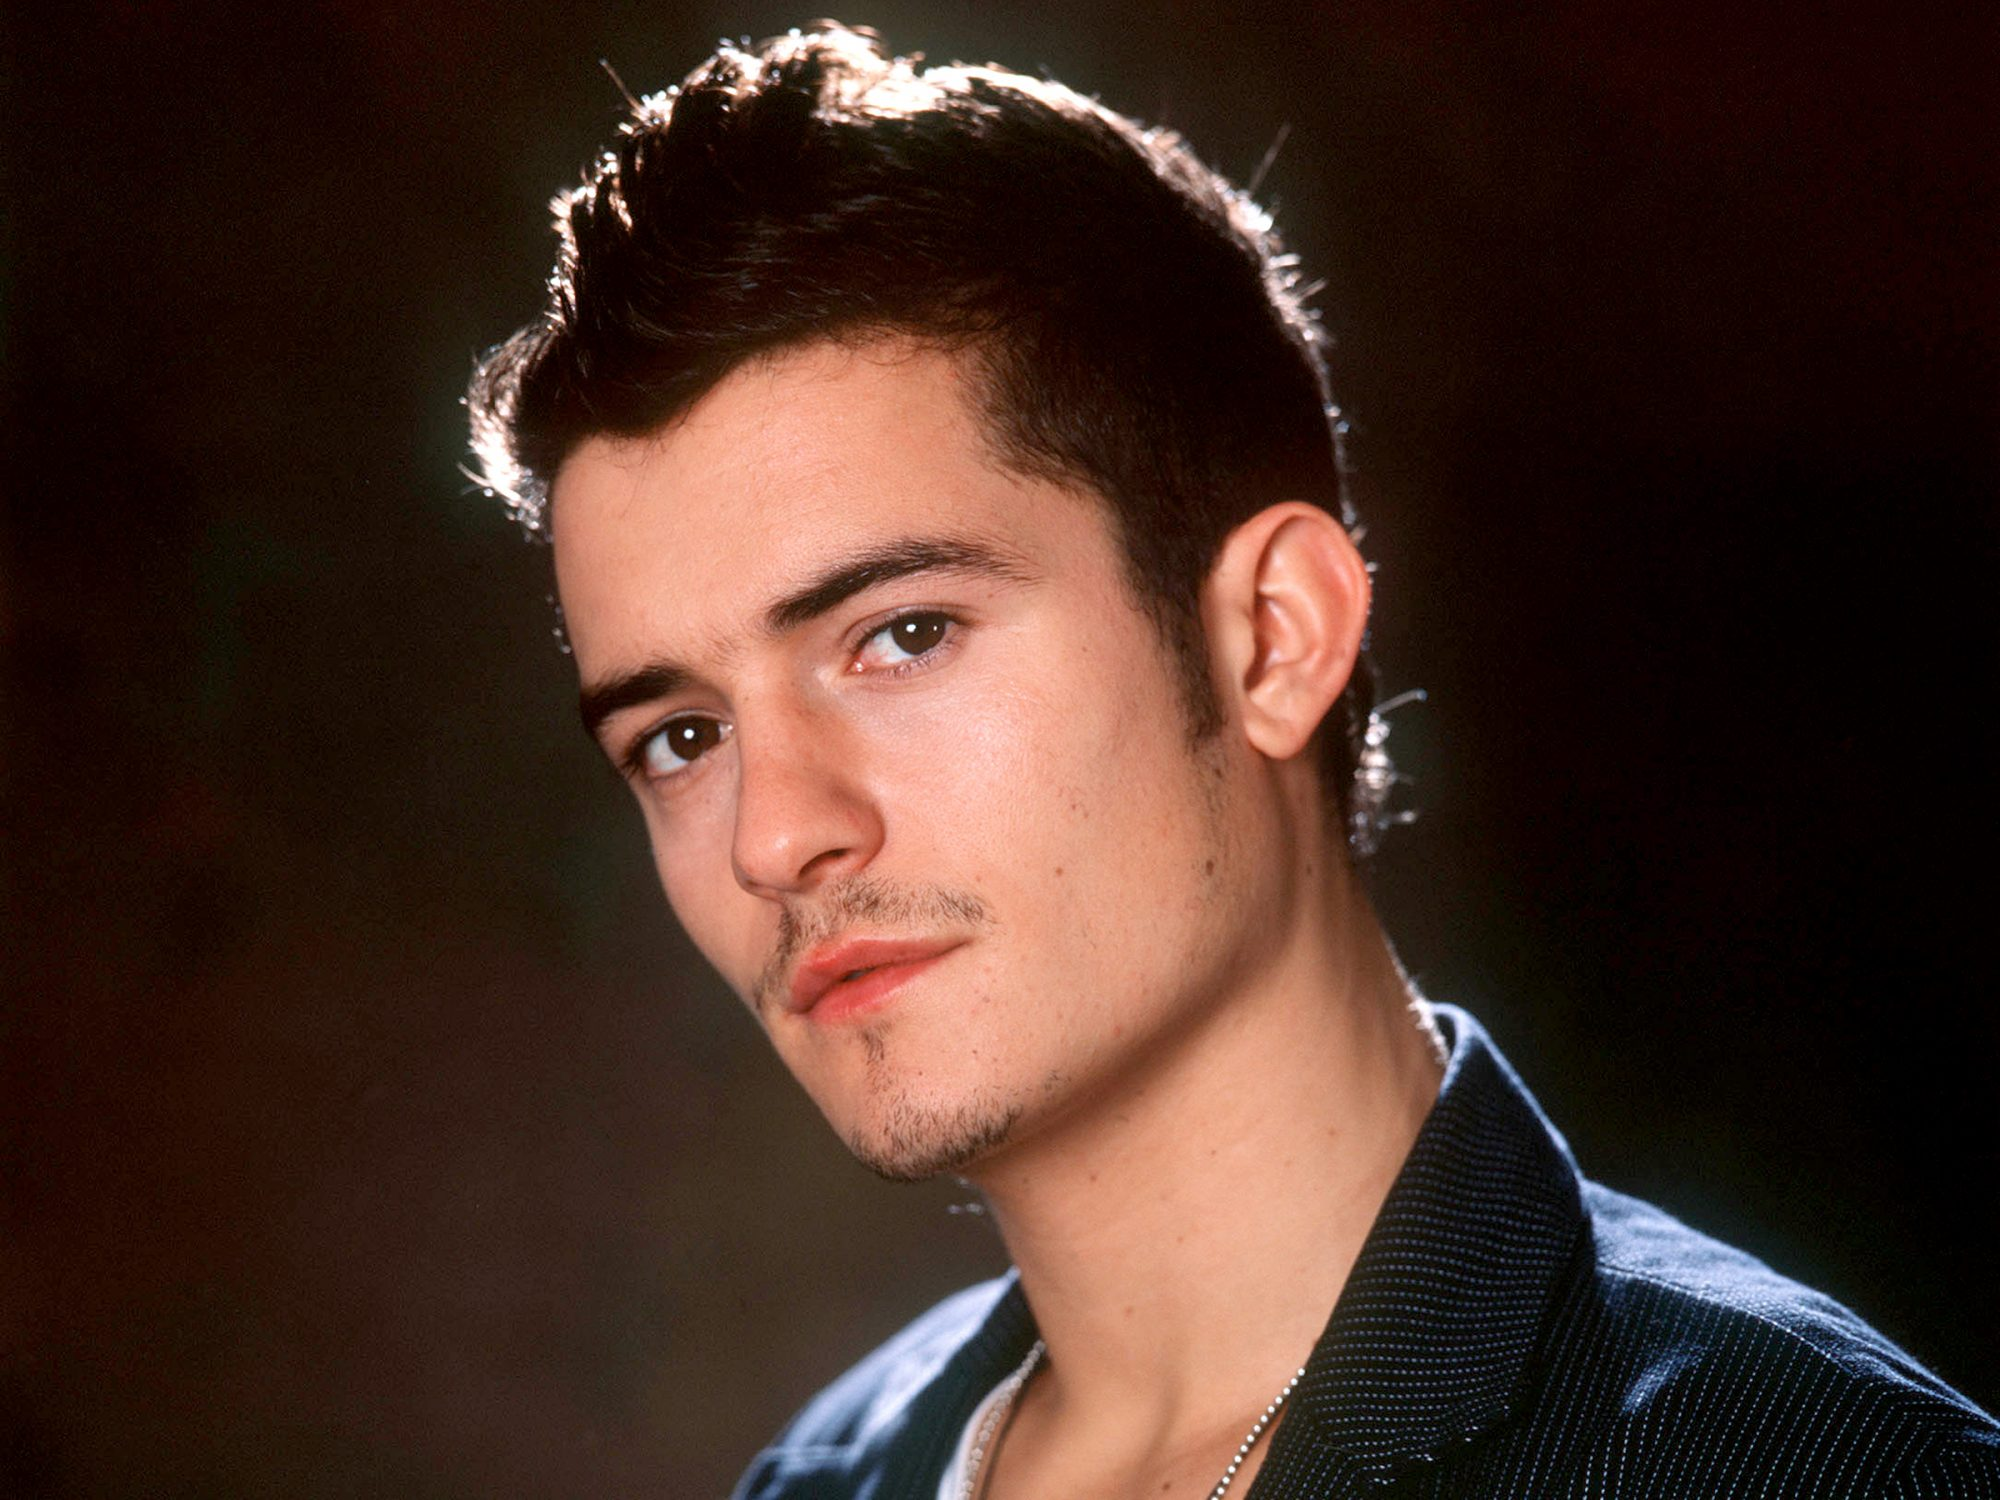 Lord Of The Rings cast - Orlando Bloom portrait